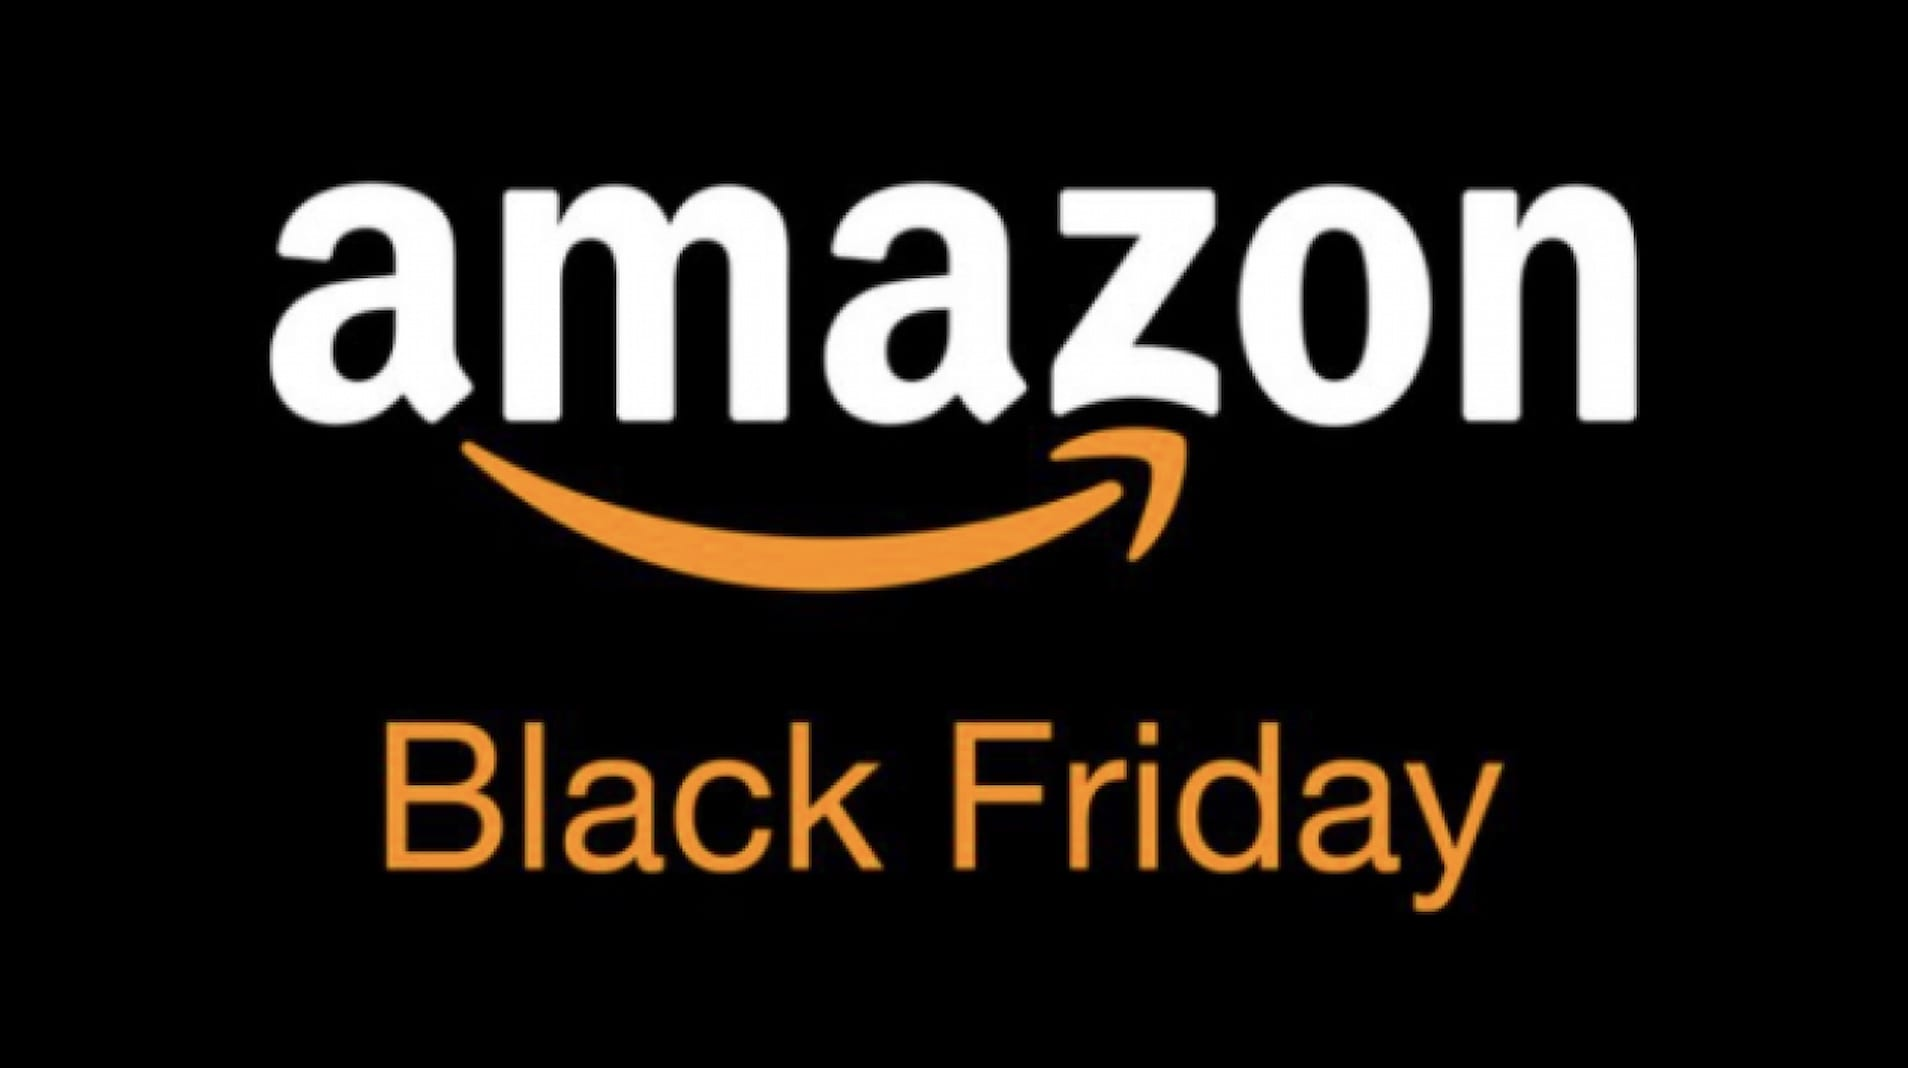 DJI Black Friday deals and more on Amazon